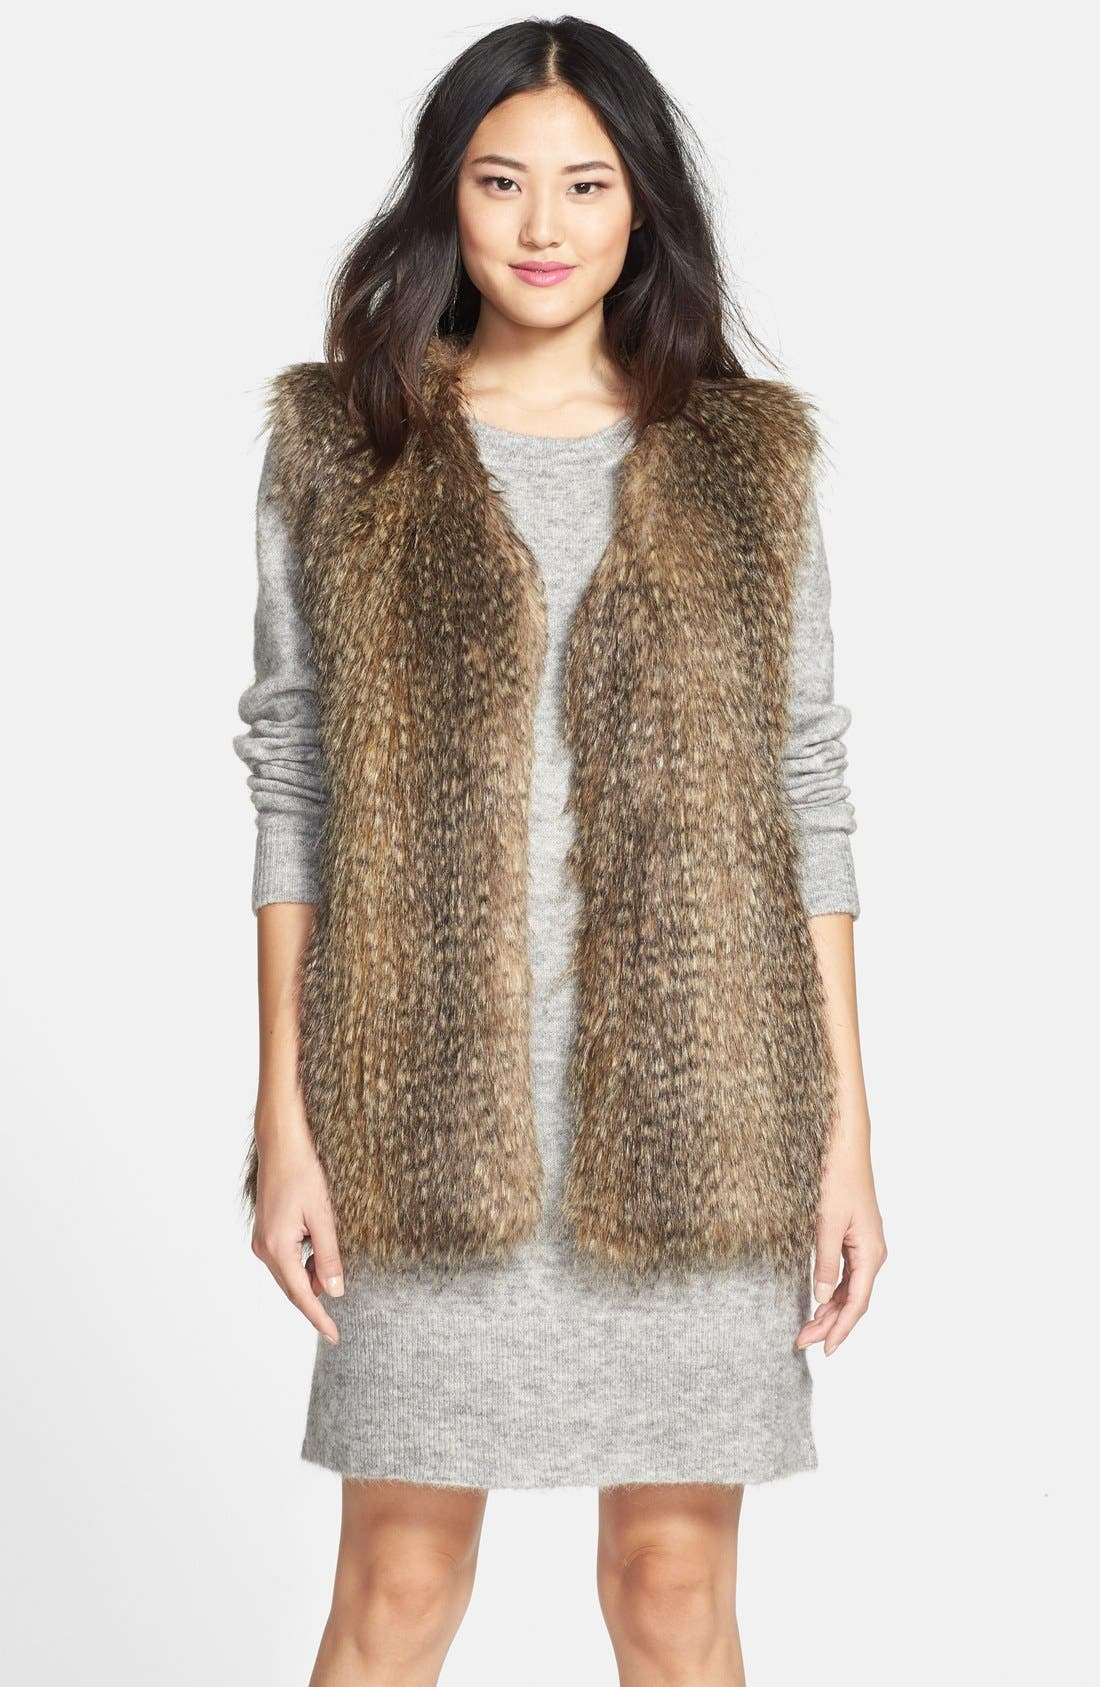 women s vests - fur vests, leather vests and denim vests Layering is a quick way to create new looks, and women's vests make it easier than ever. Throw a suede or shearling vest from Marc New York or cupcakes and cashmere over a simple T-shirt to instantly add texture and sophistication, or wear a cozy puffer vest from Canada Goose or The North Face for a bit of extra warmth without bulk.